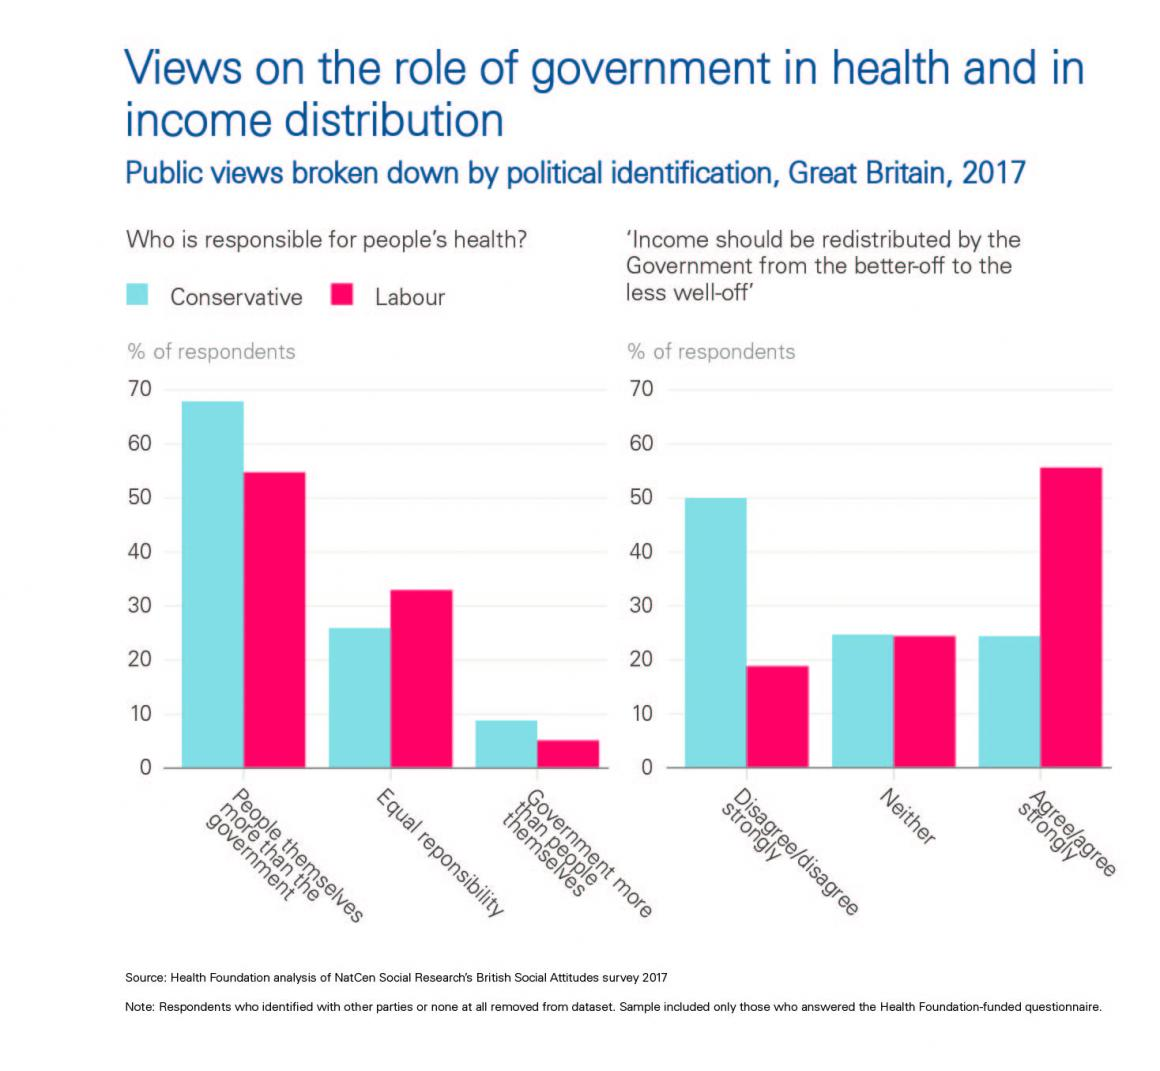 Chart - Views on the role of government in health and income